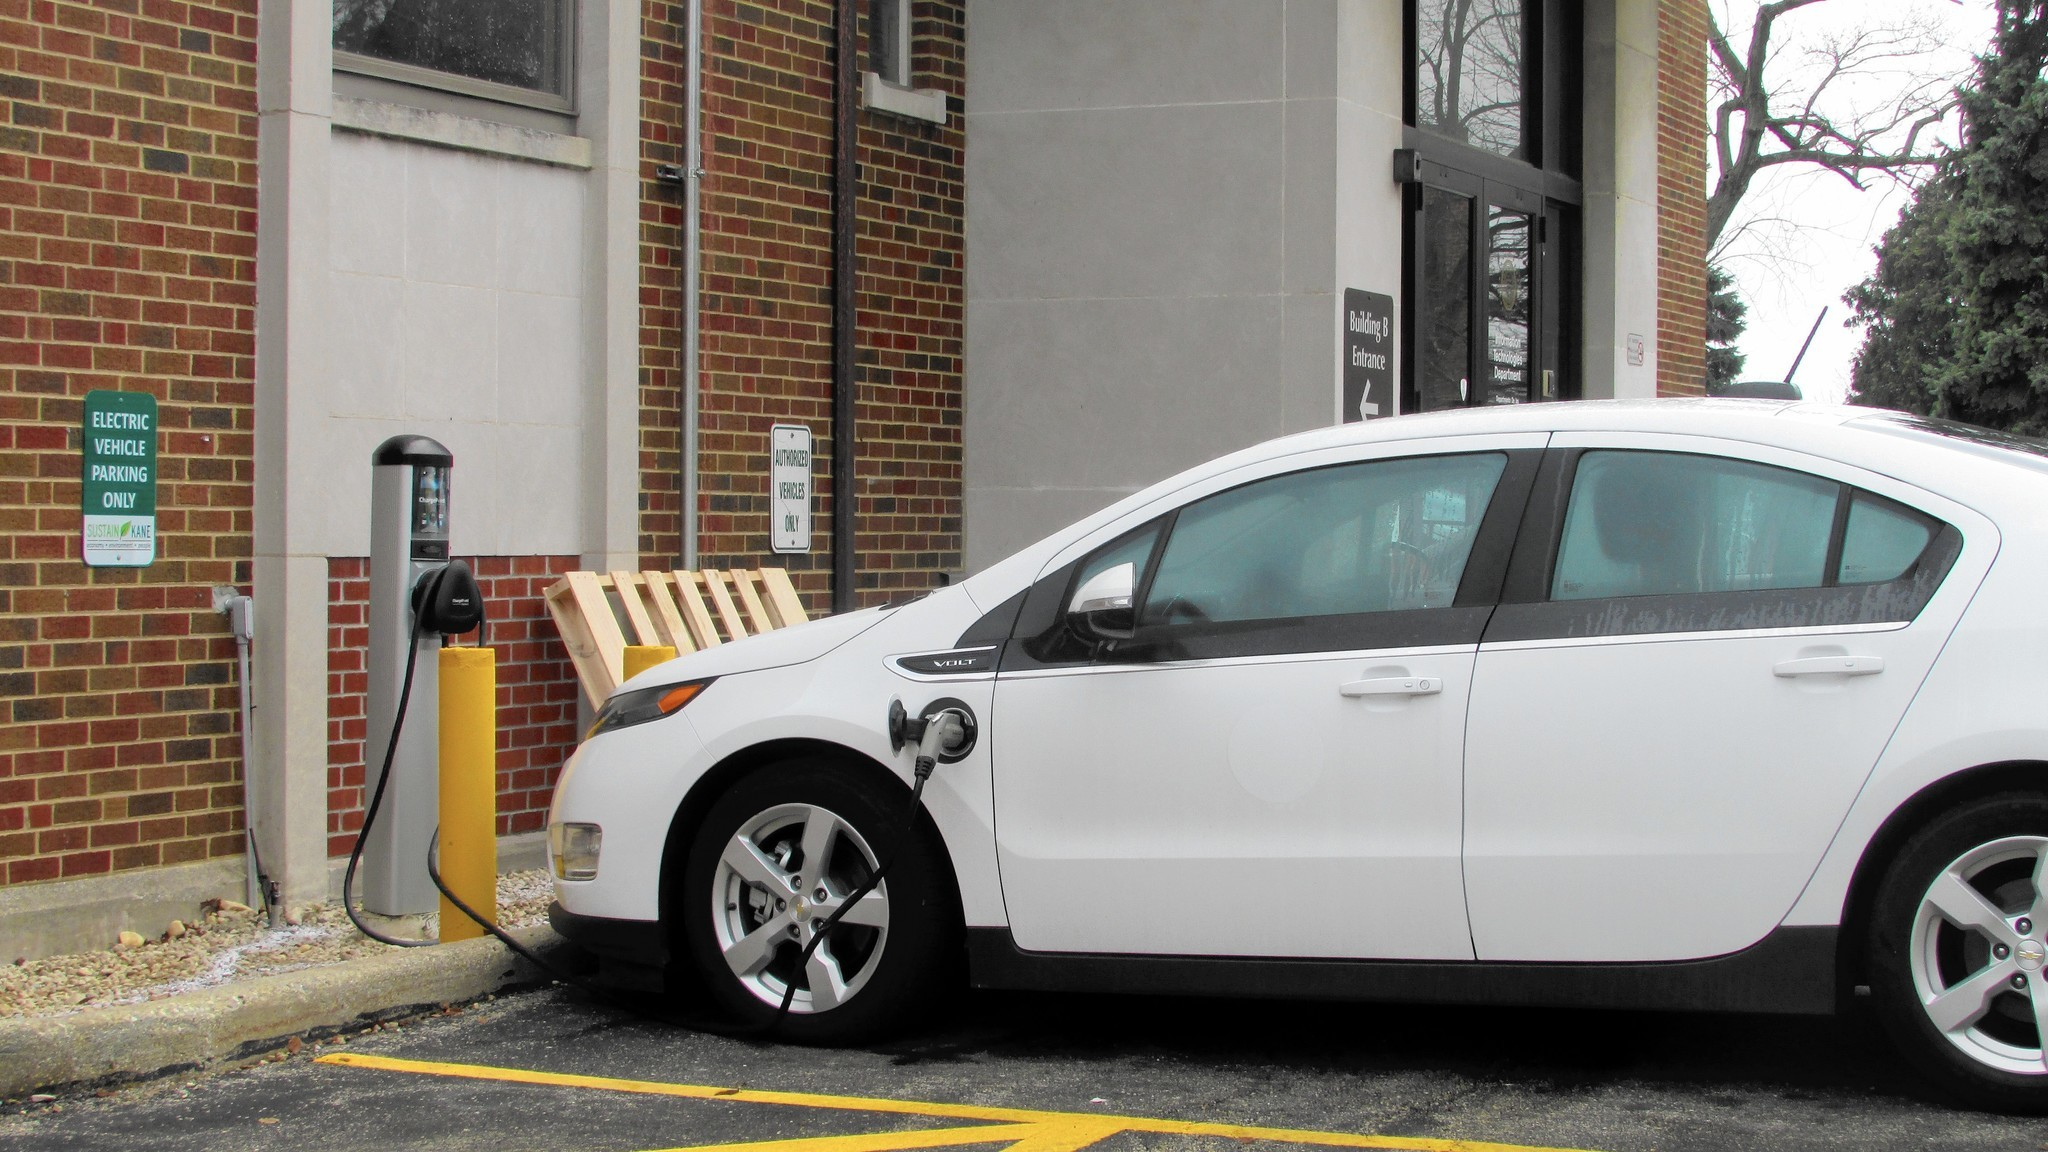 Chicago vehicle charging infrastructure boosted by VW settlement